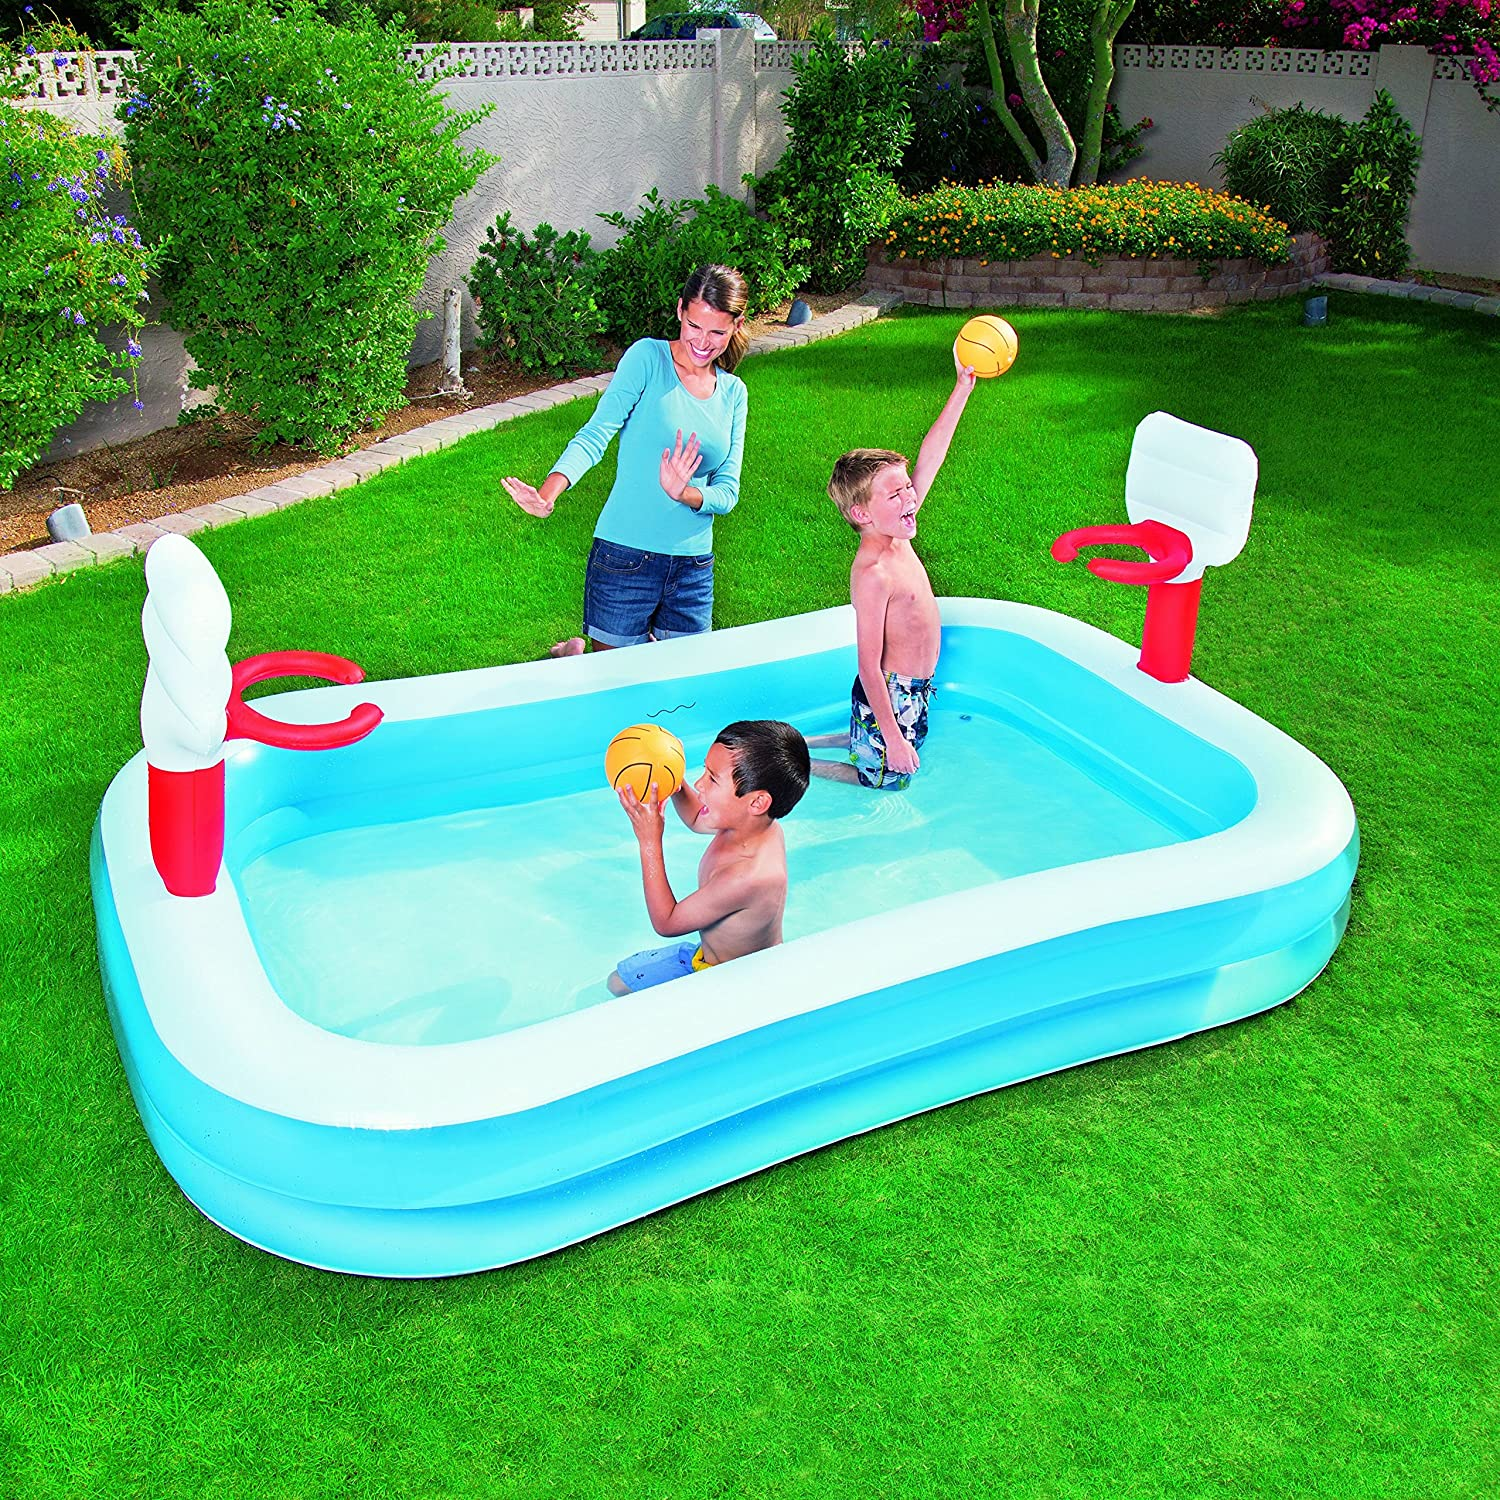 Piscina hinchable en aleman for Amazon tumbonas piscina